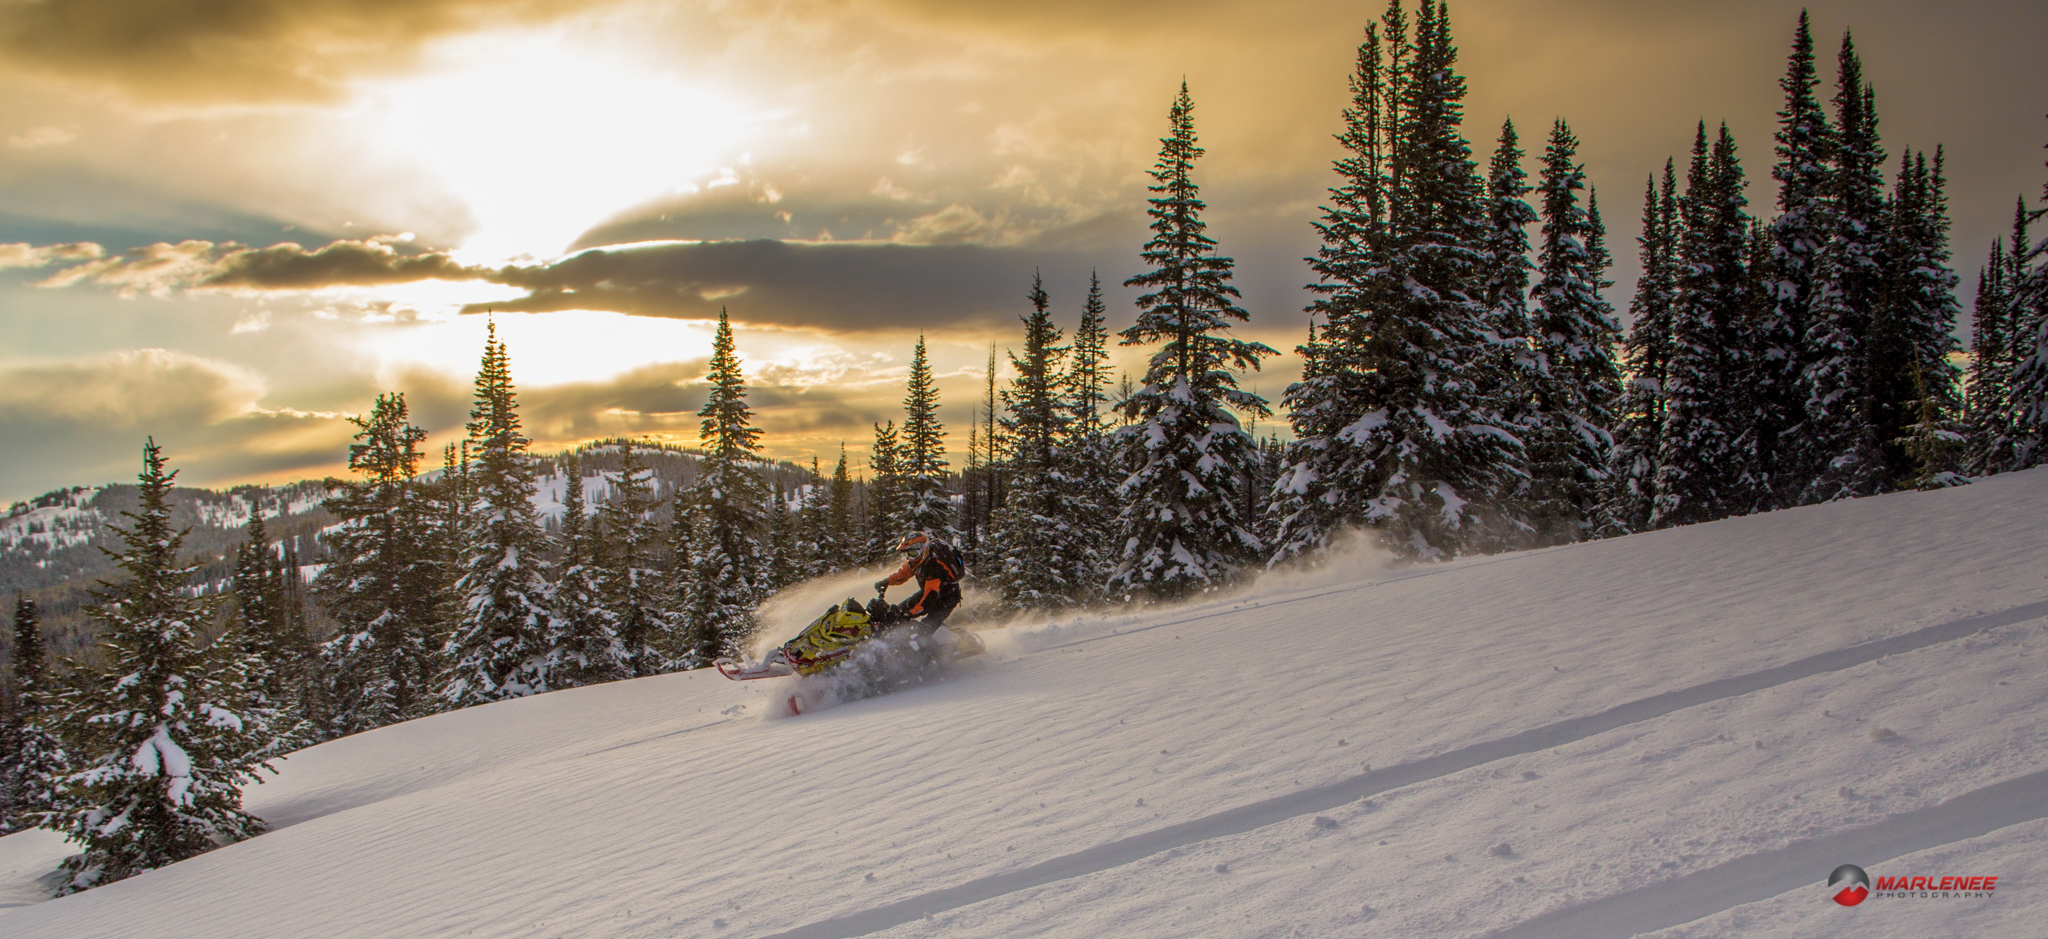 Matt Entz in the Golden Hour - Photo by Adam Onasch